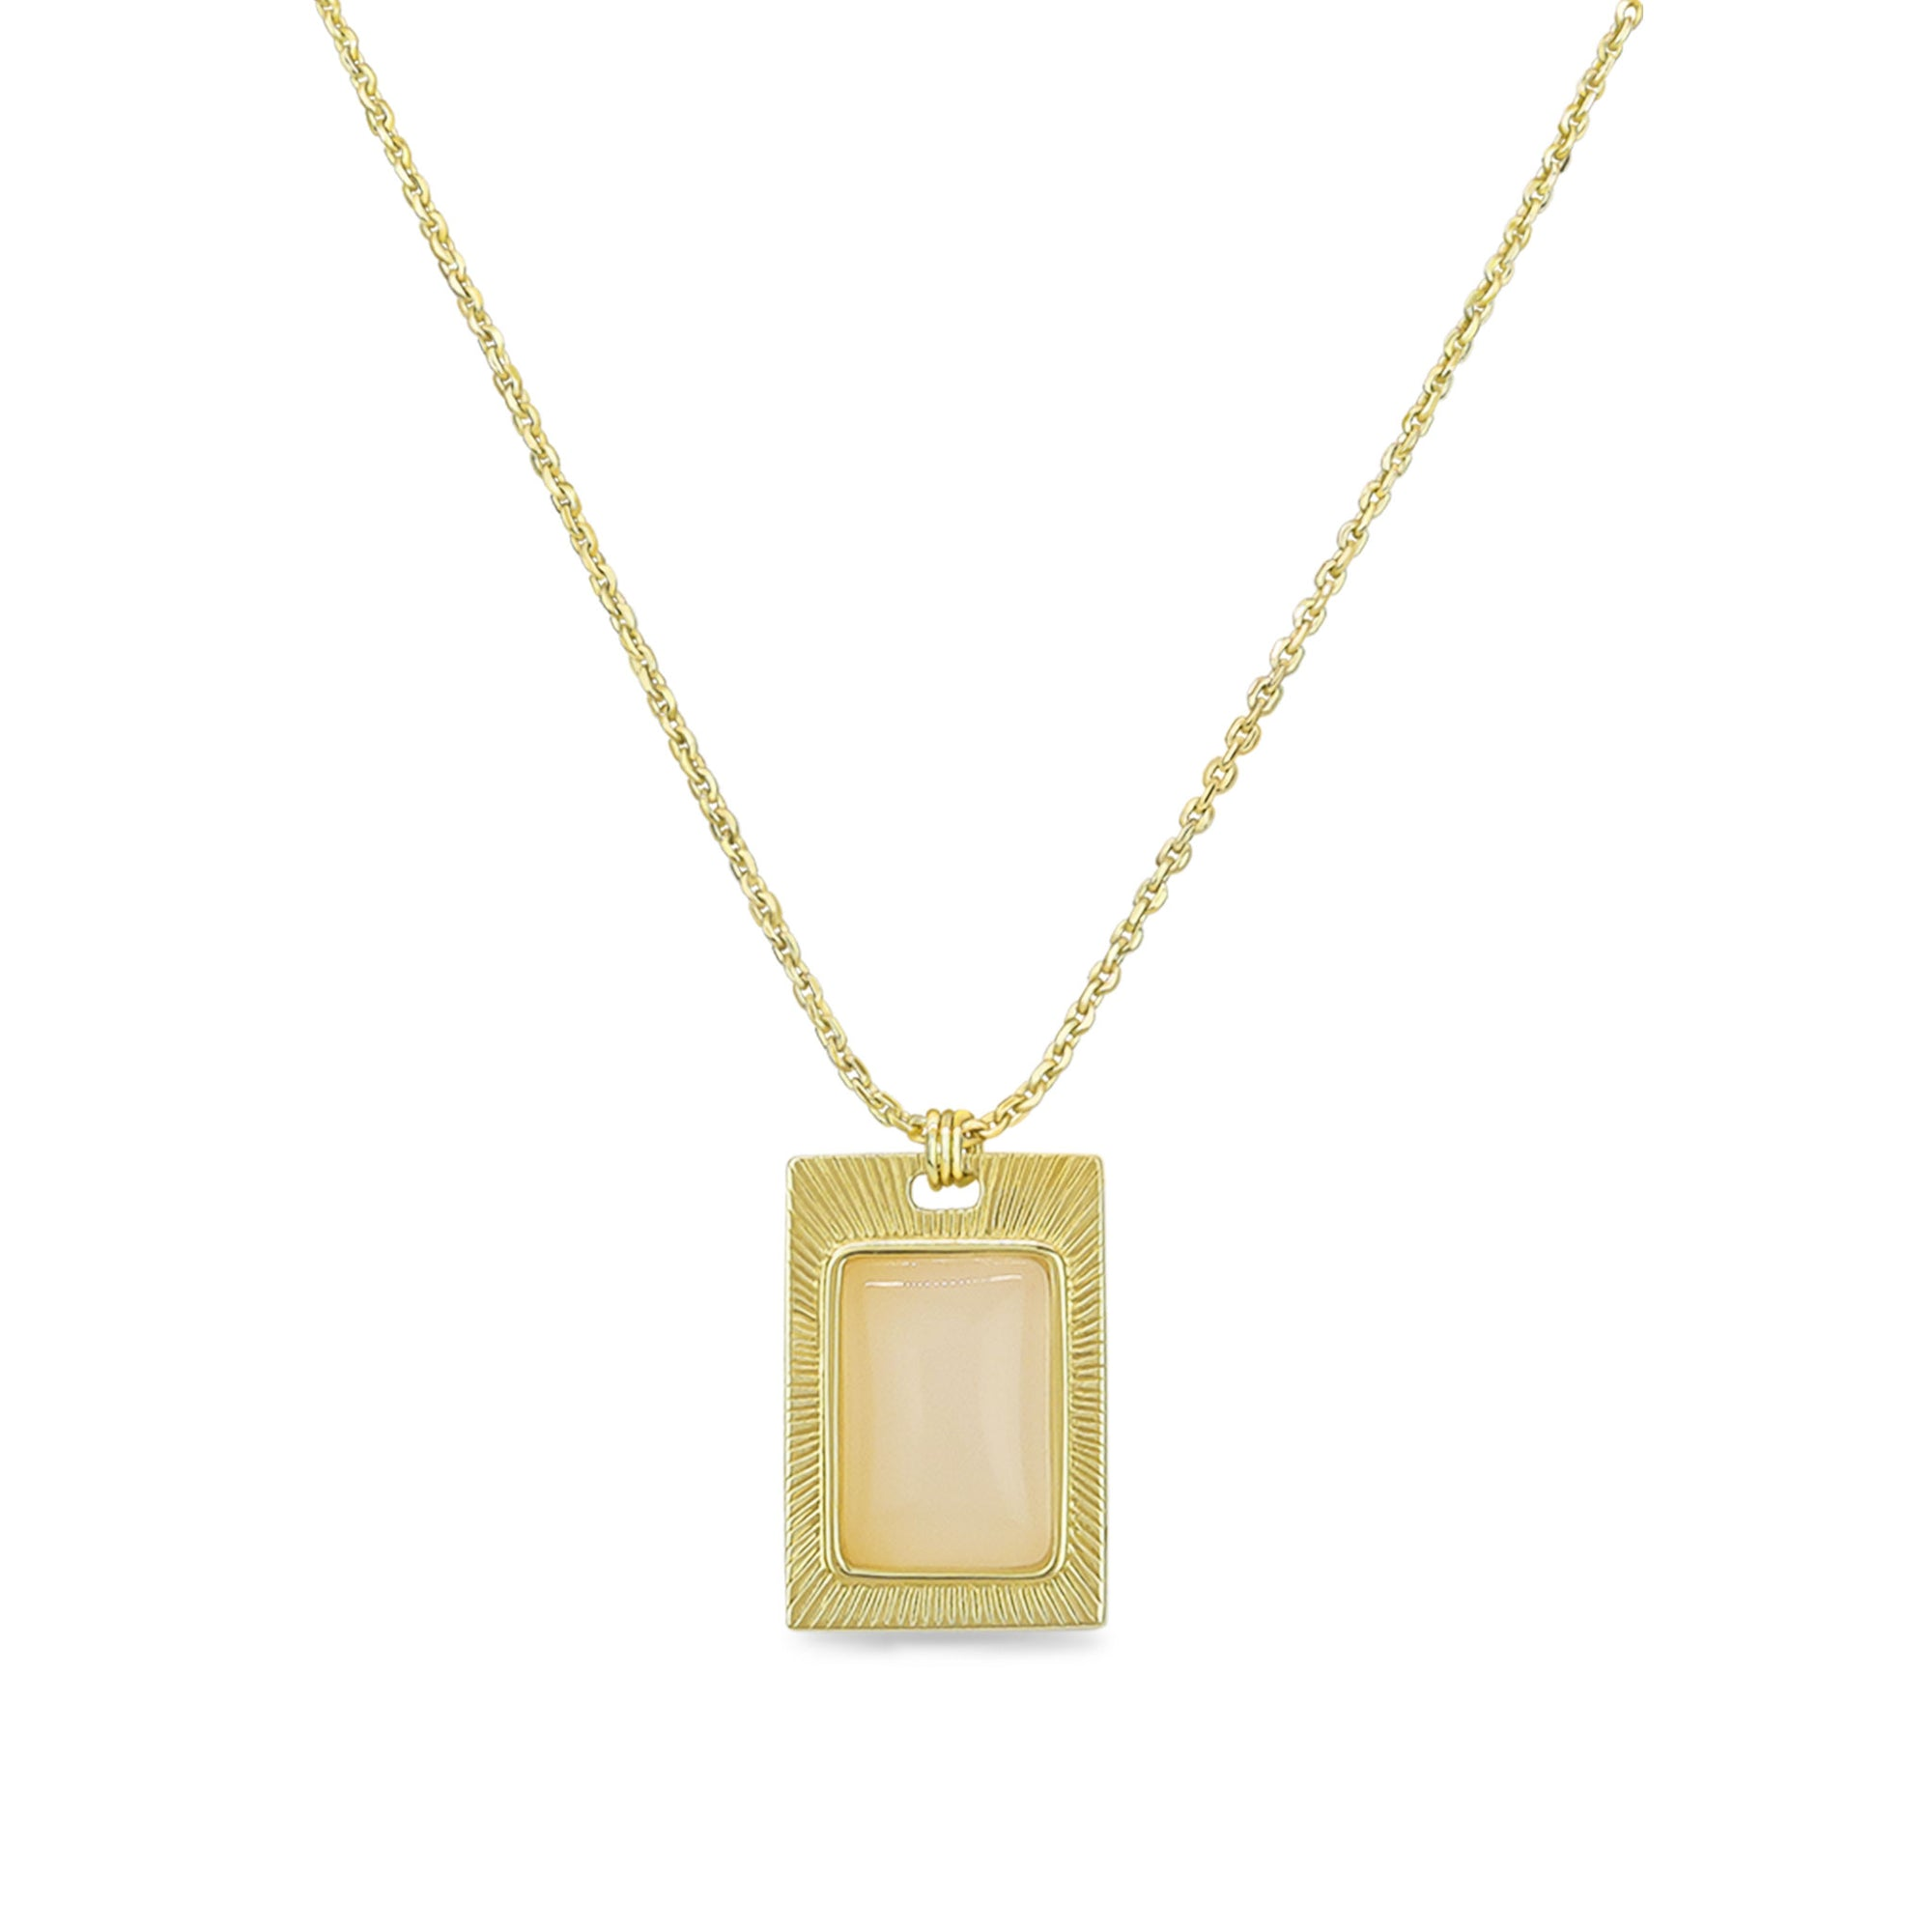 Capitola Milky Necklace - Evertess Jewelry